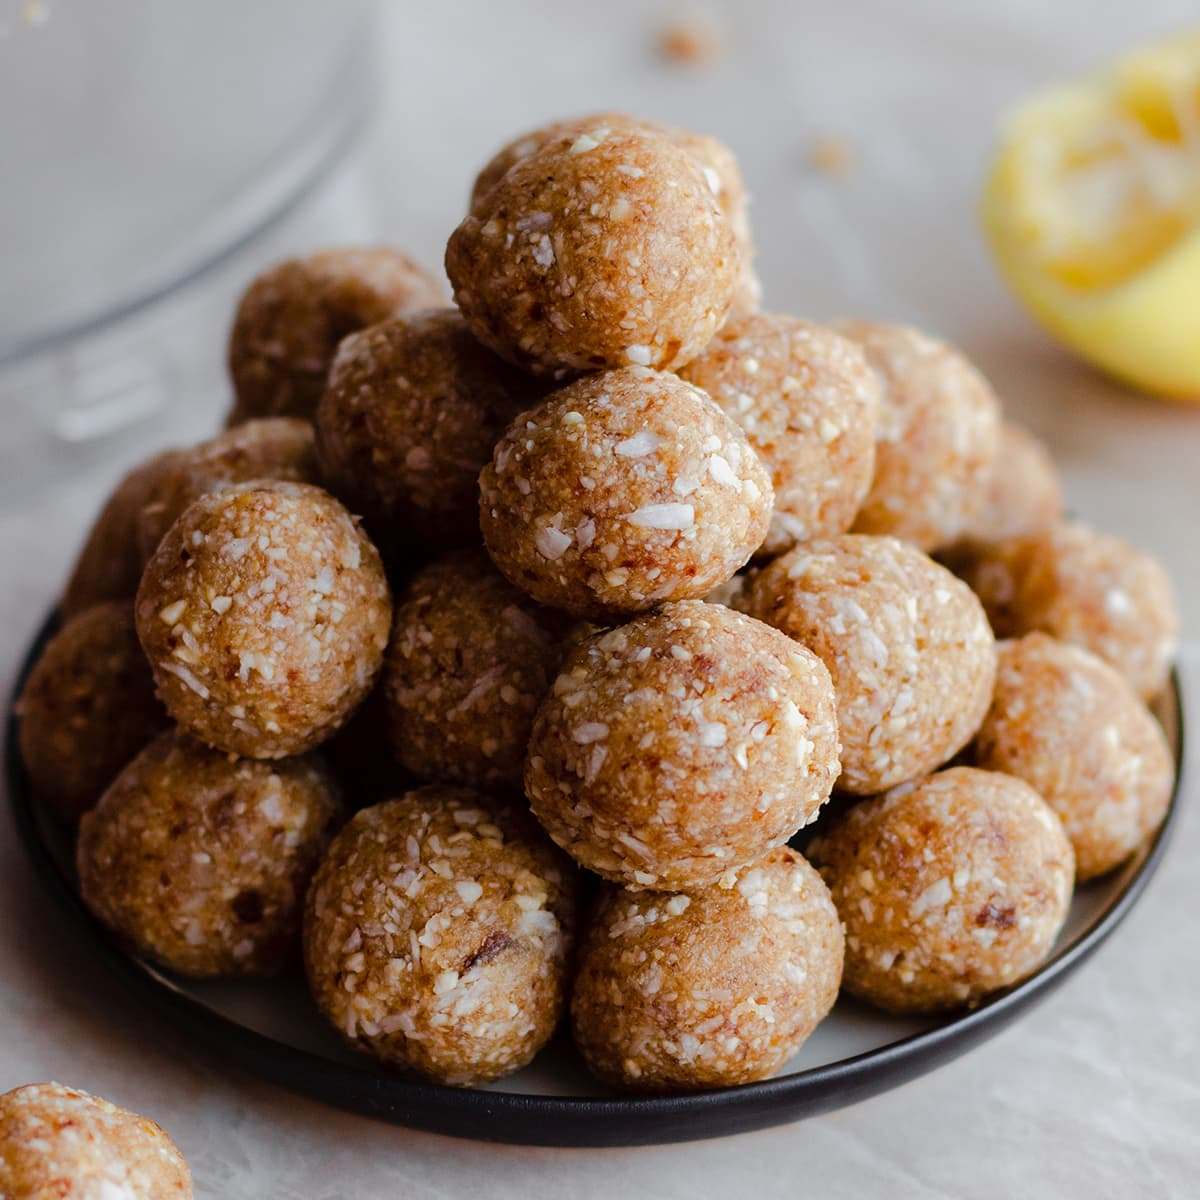 Coconut Energy Balls stacked up on a plate. Light marble background.